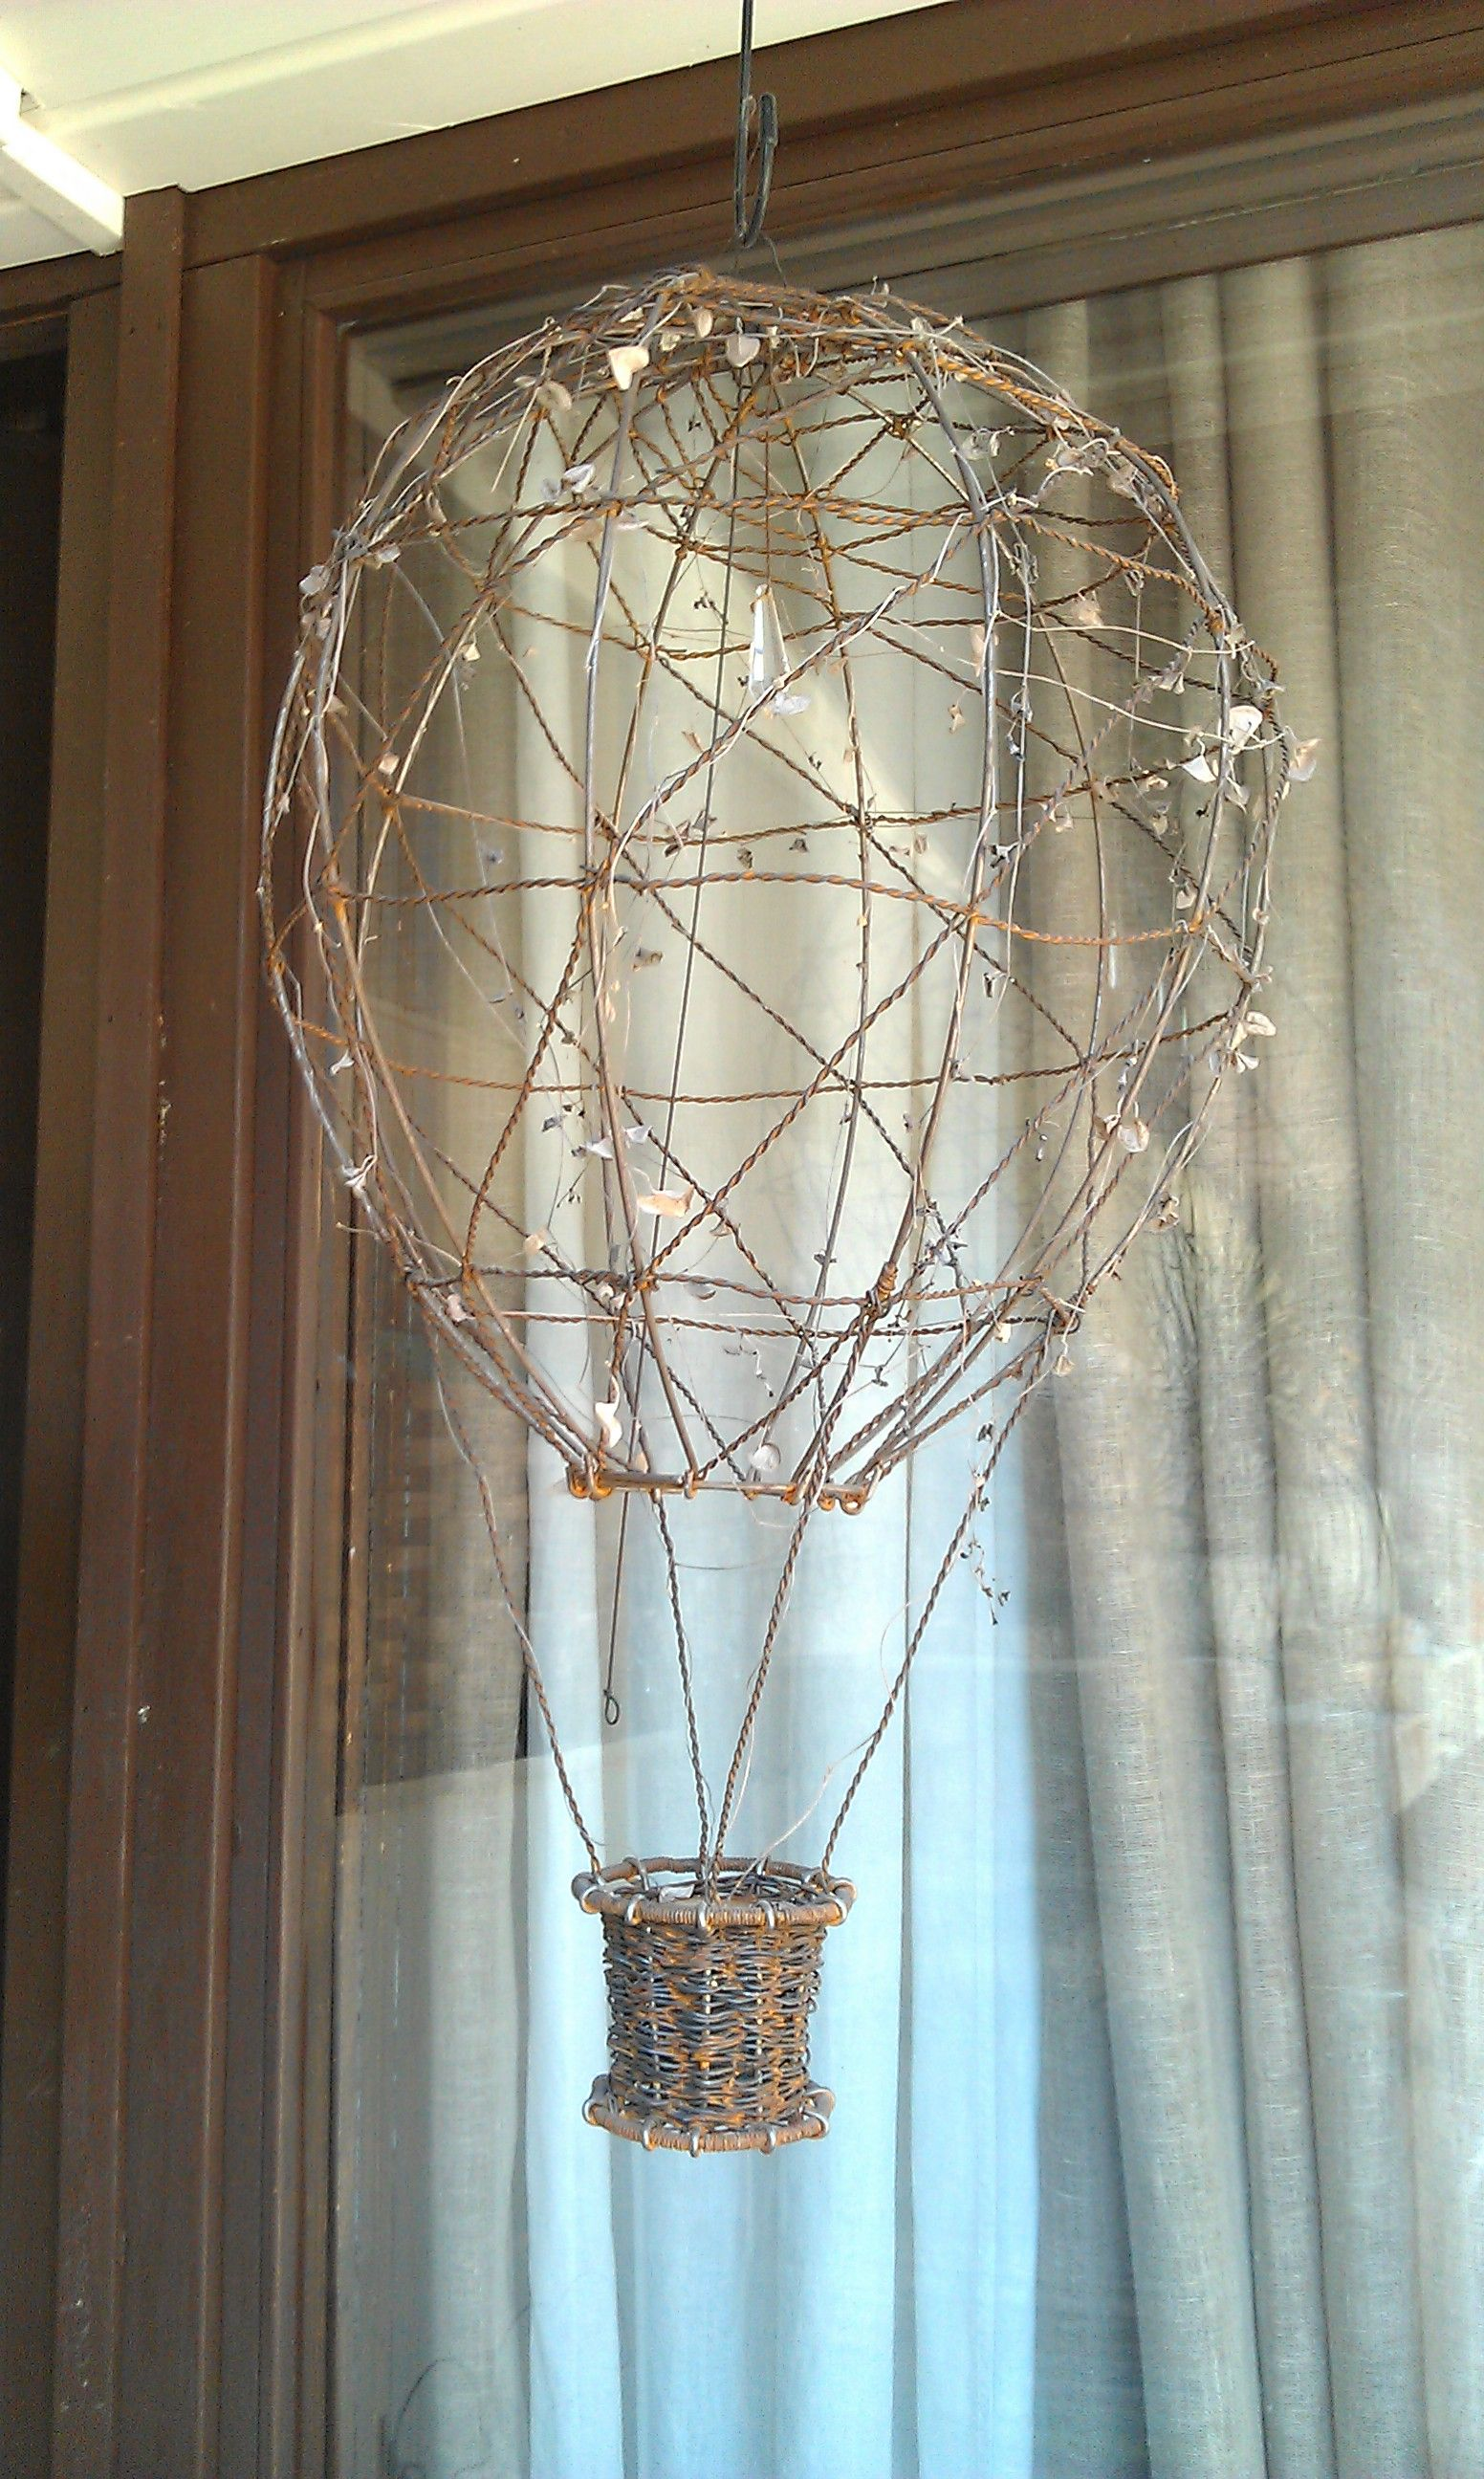 Hot air balloon made out of wire | Hand made by me | Pinterest ...